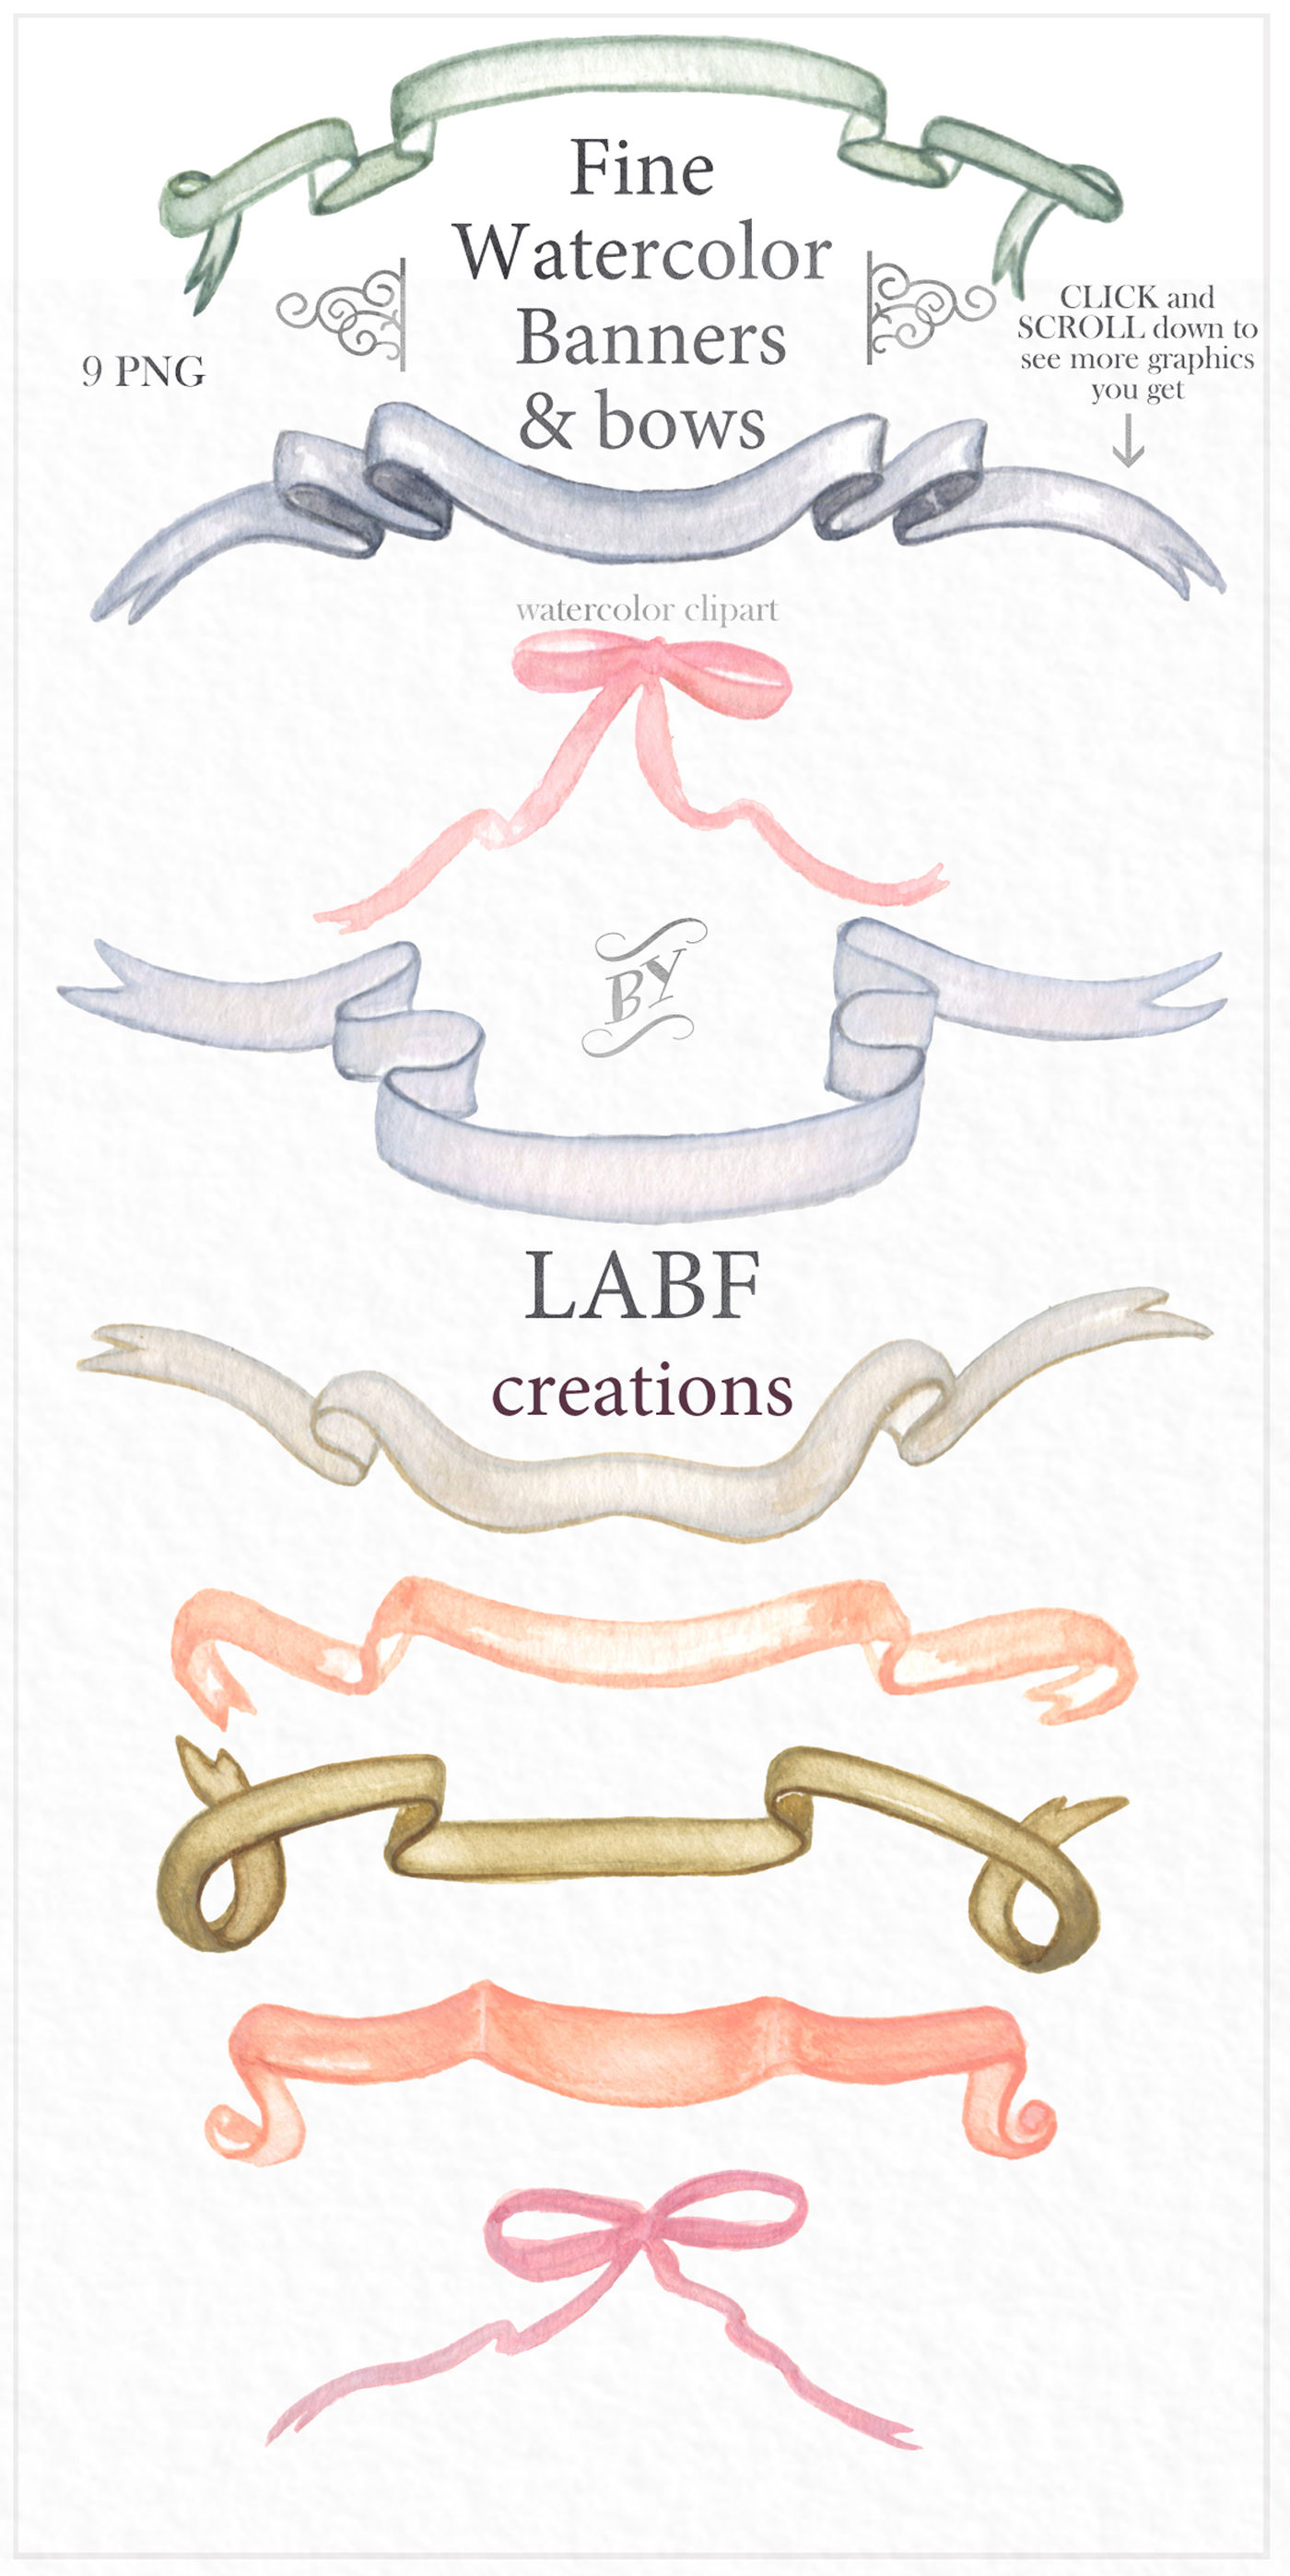 Crests, banners & bows. Watercolor clipart. By LABFcreations.